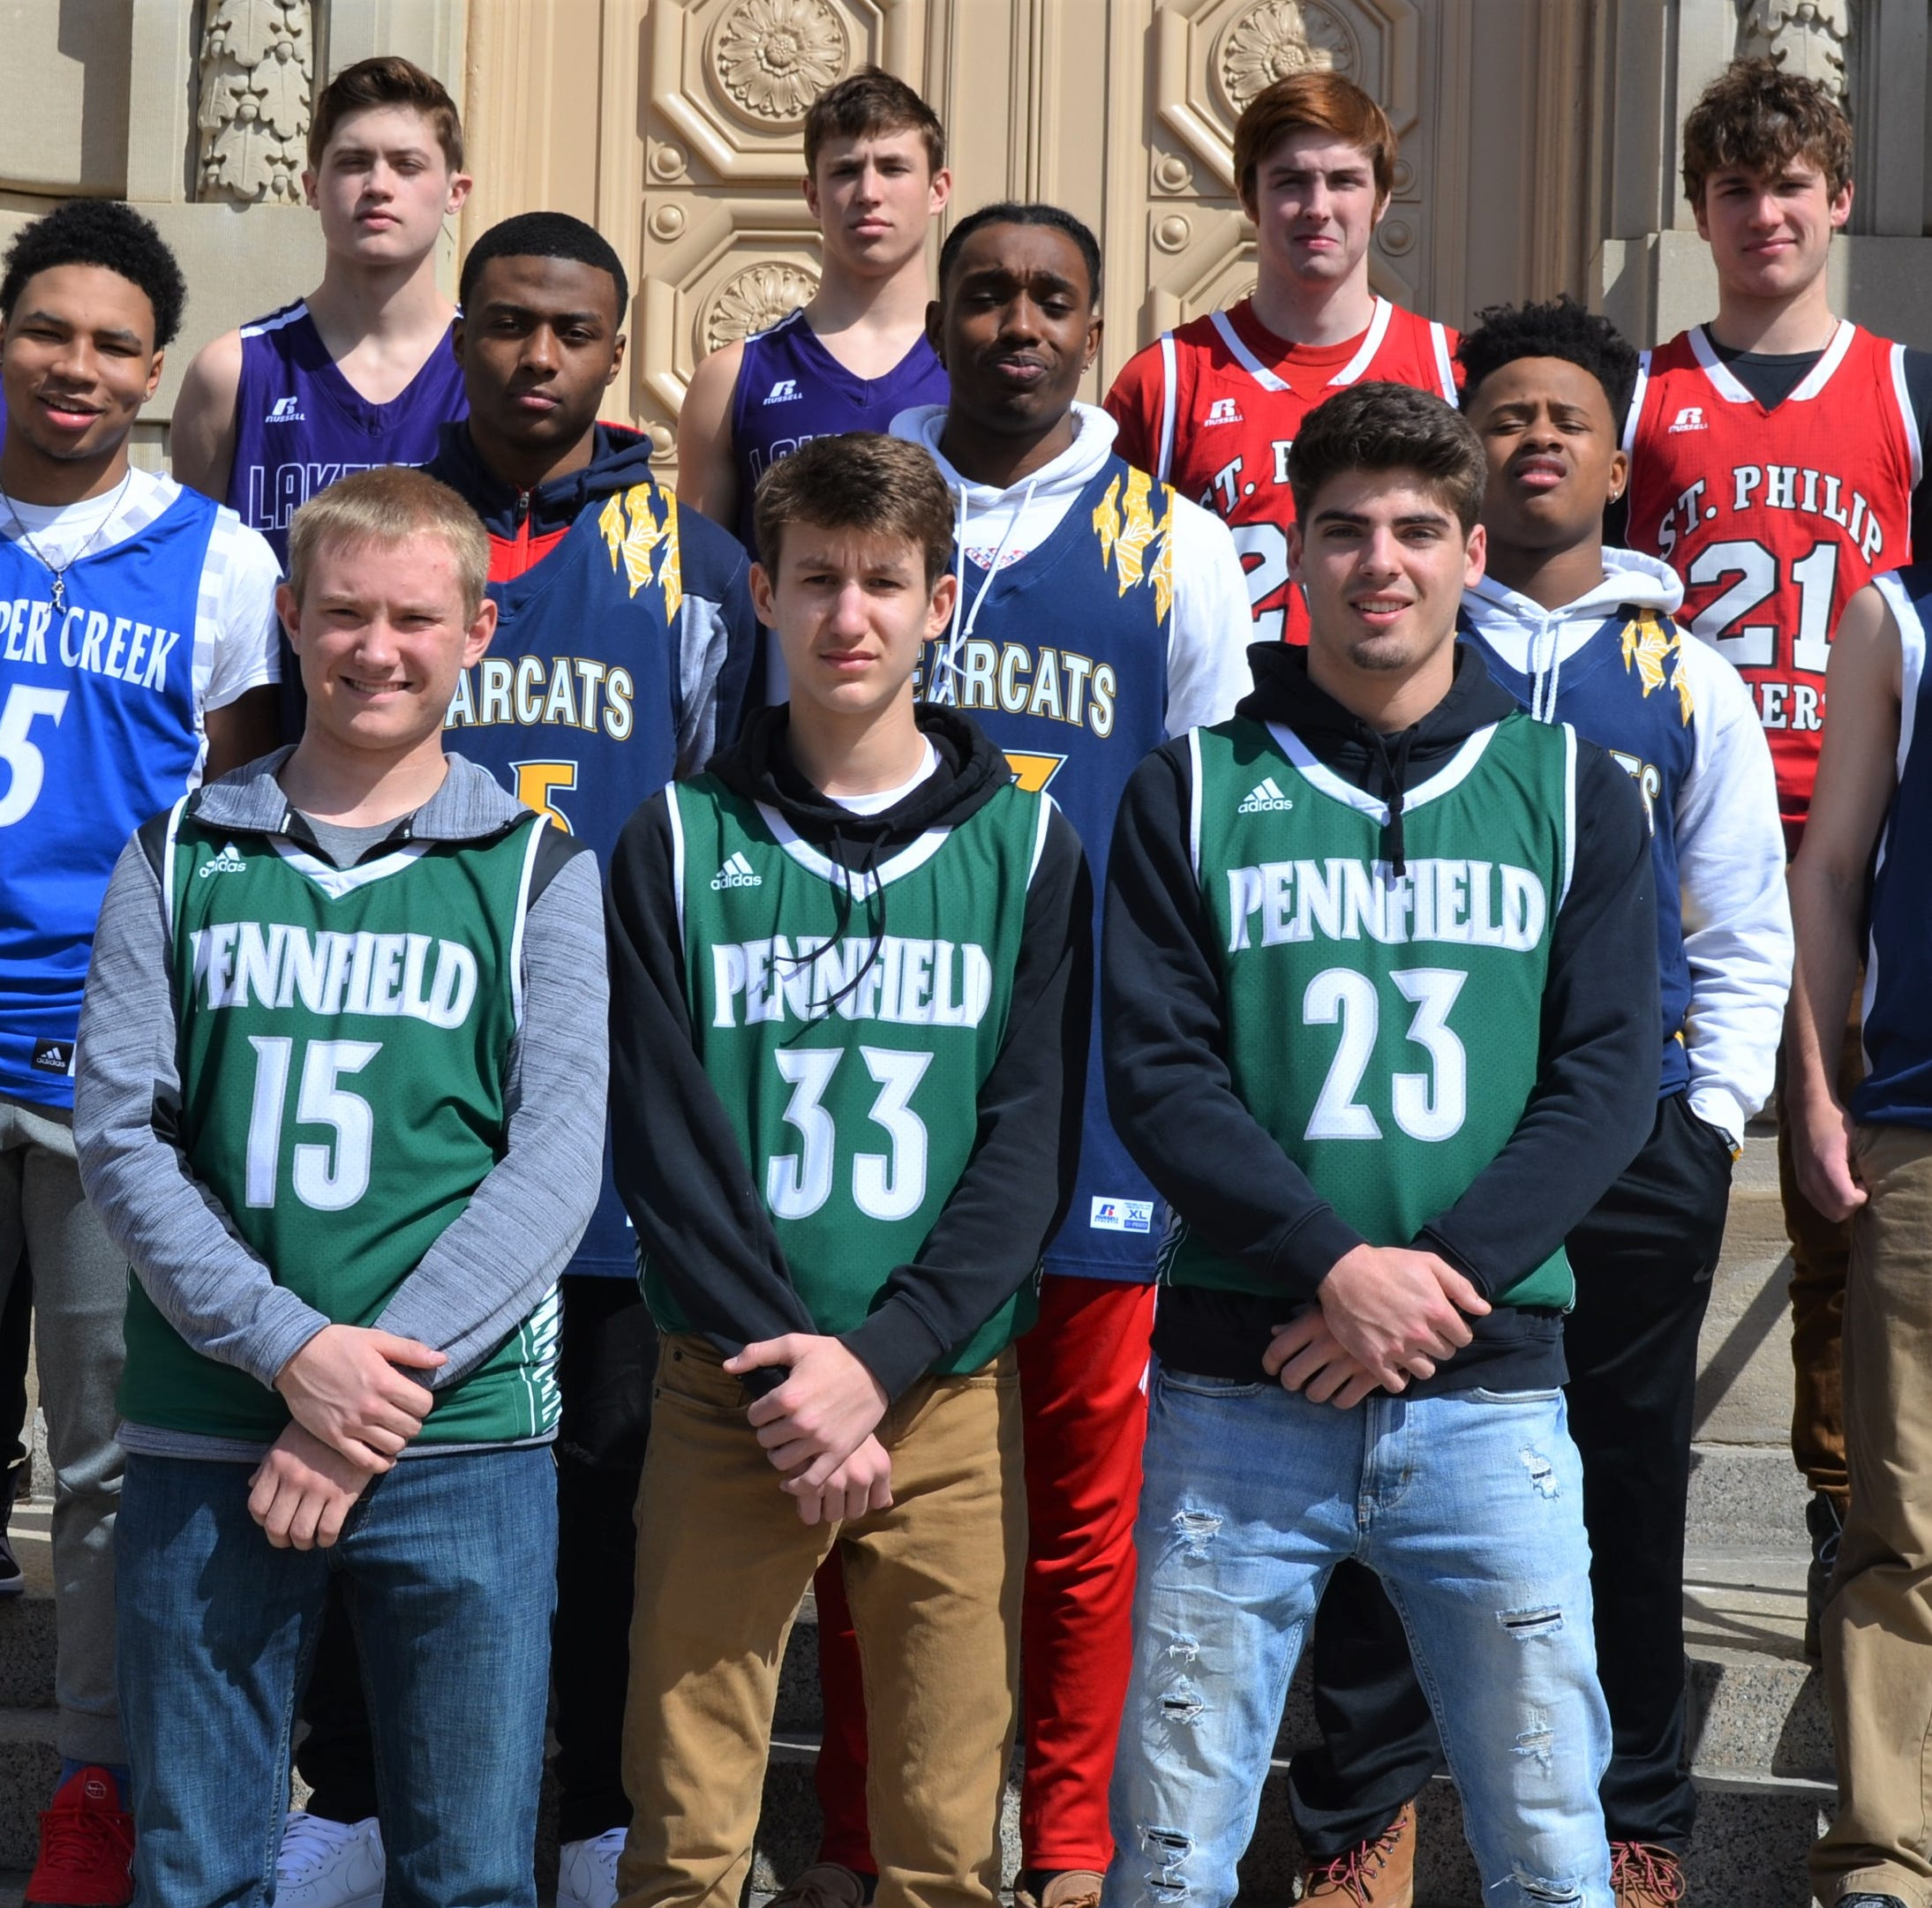 Pennfield's Burns named Enquirer All-City Boys Basketball Coach of the Year